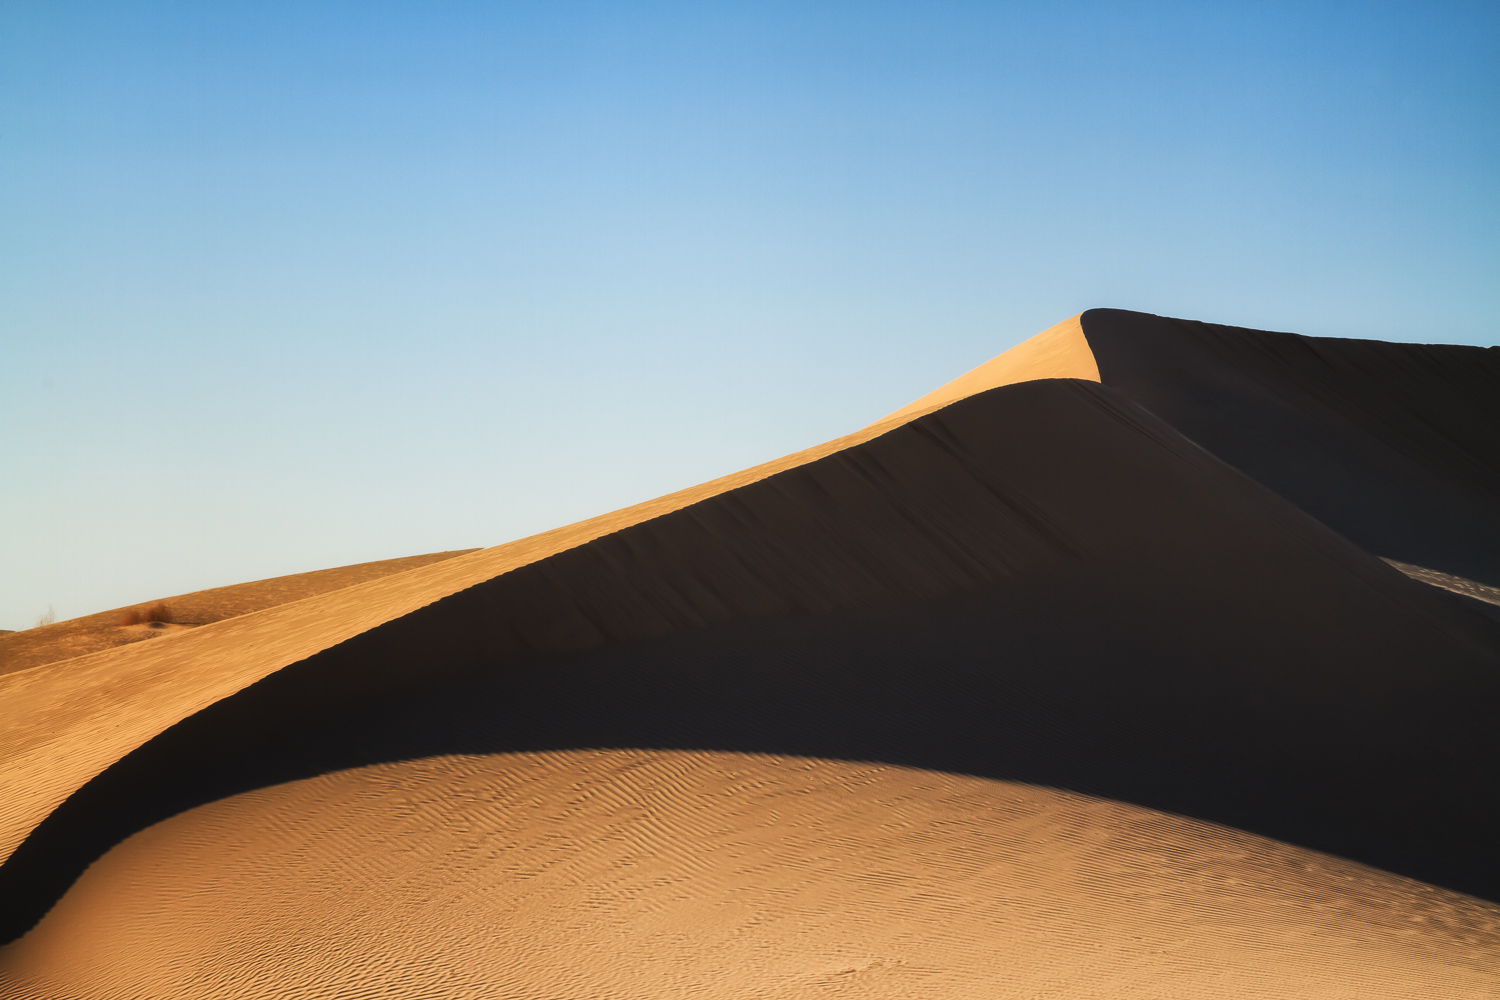 Shadow on the Dunes - Beginner's Guide to Natural Light in Landscape Photography